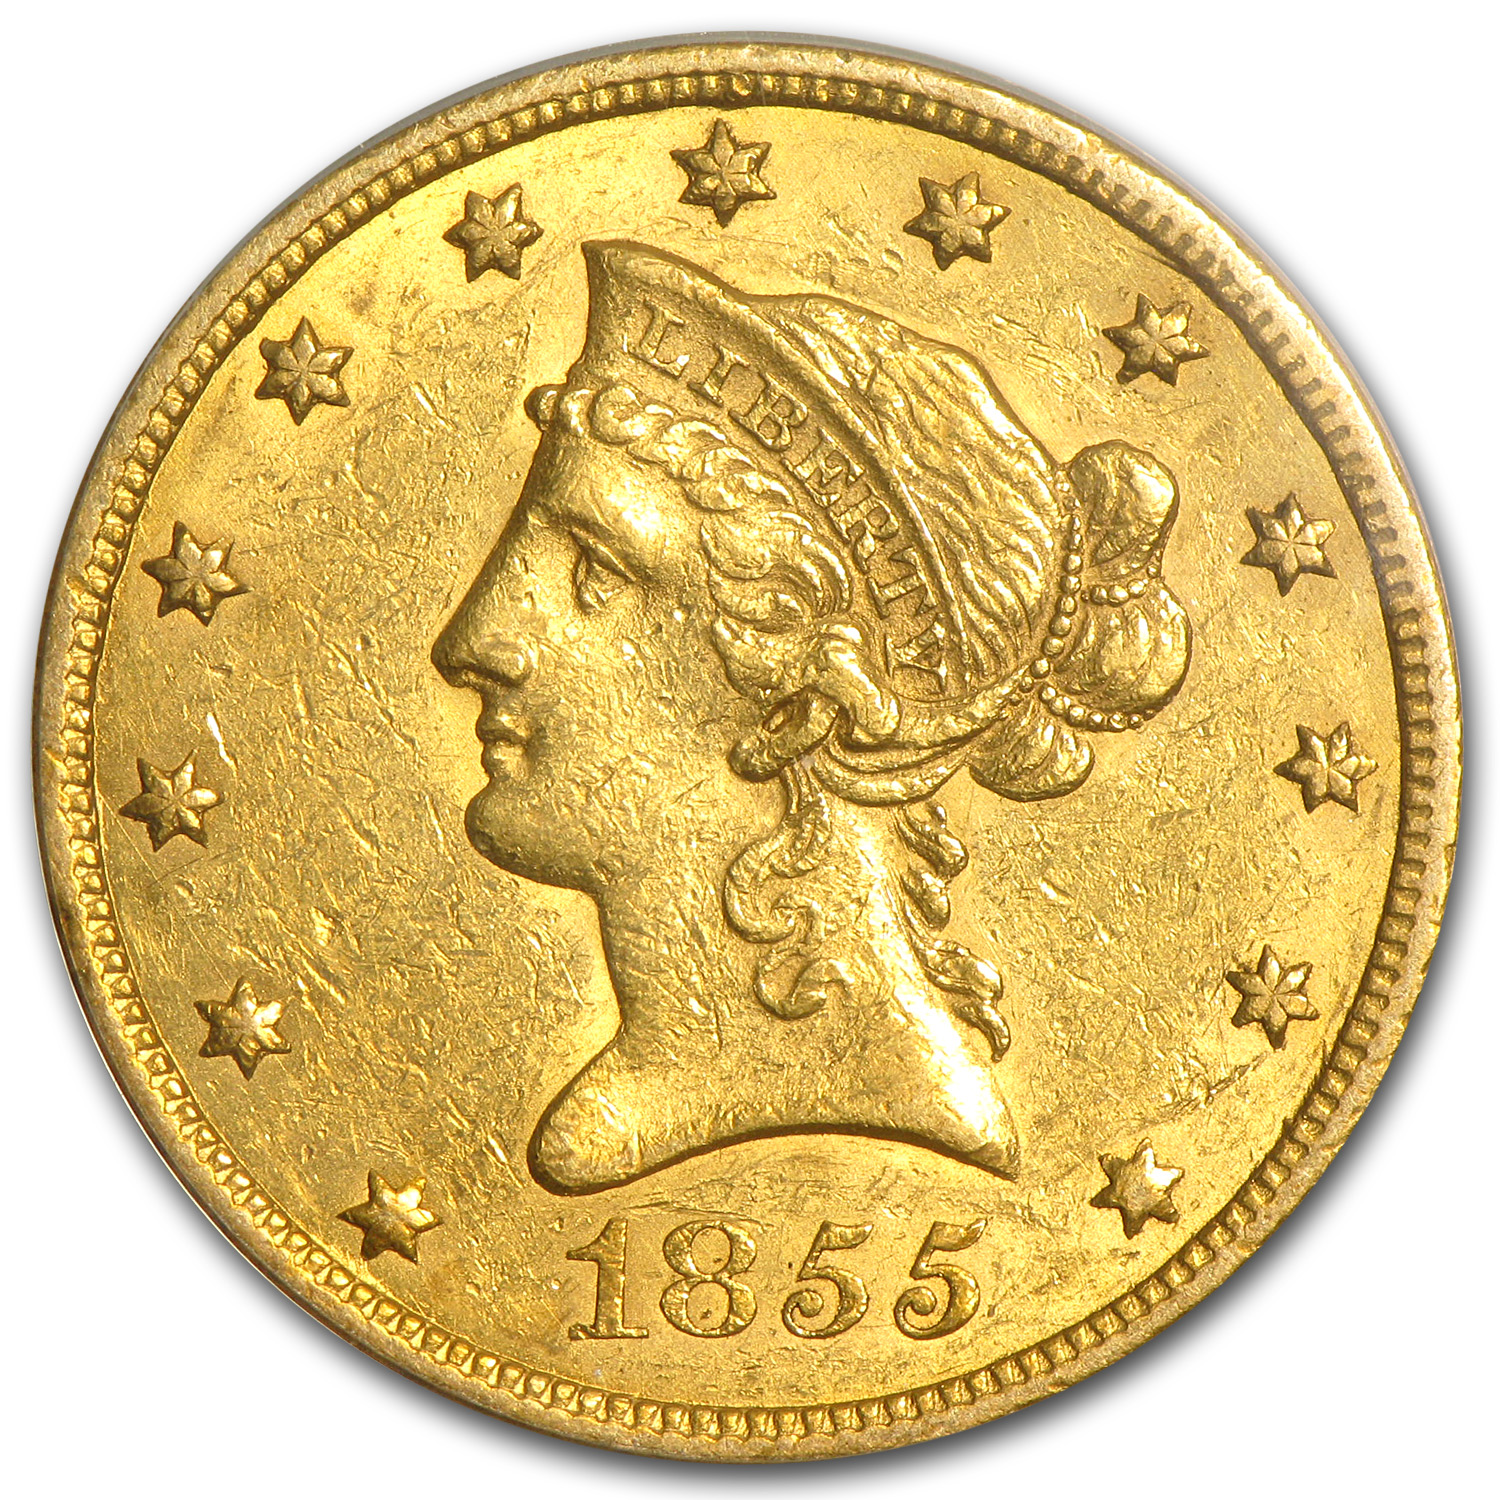 1855 $10 Liberty Gold Eagle - Almost Uncirculated